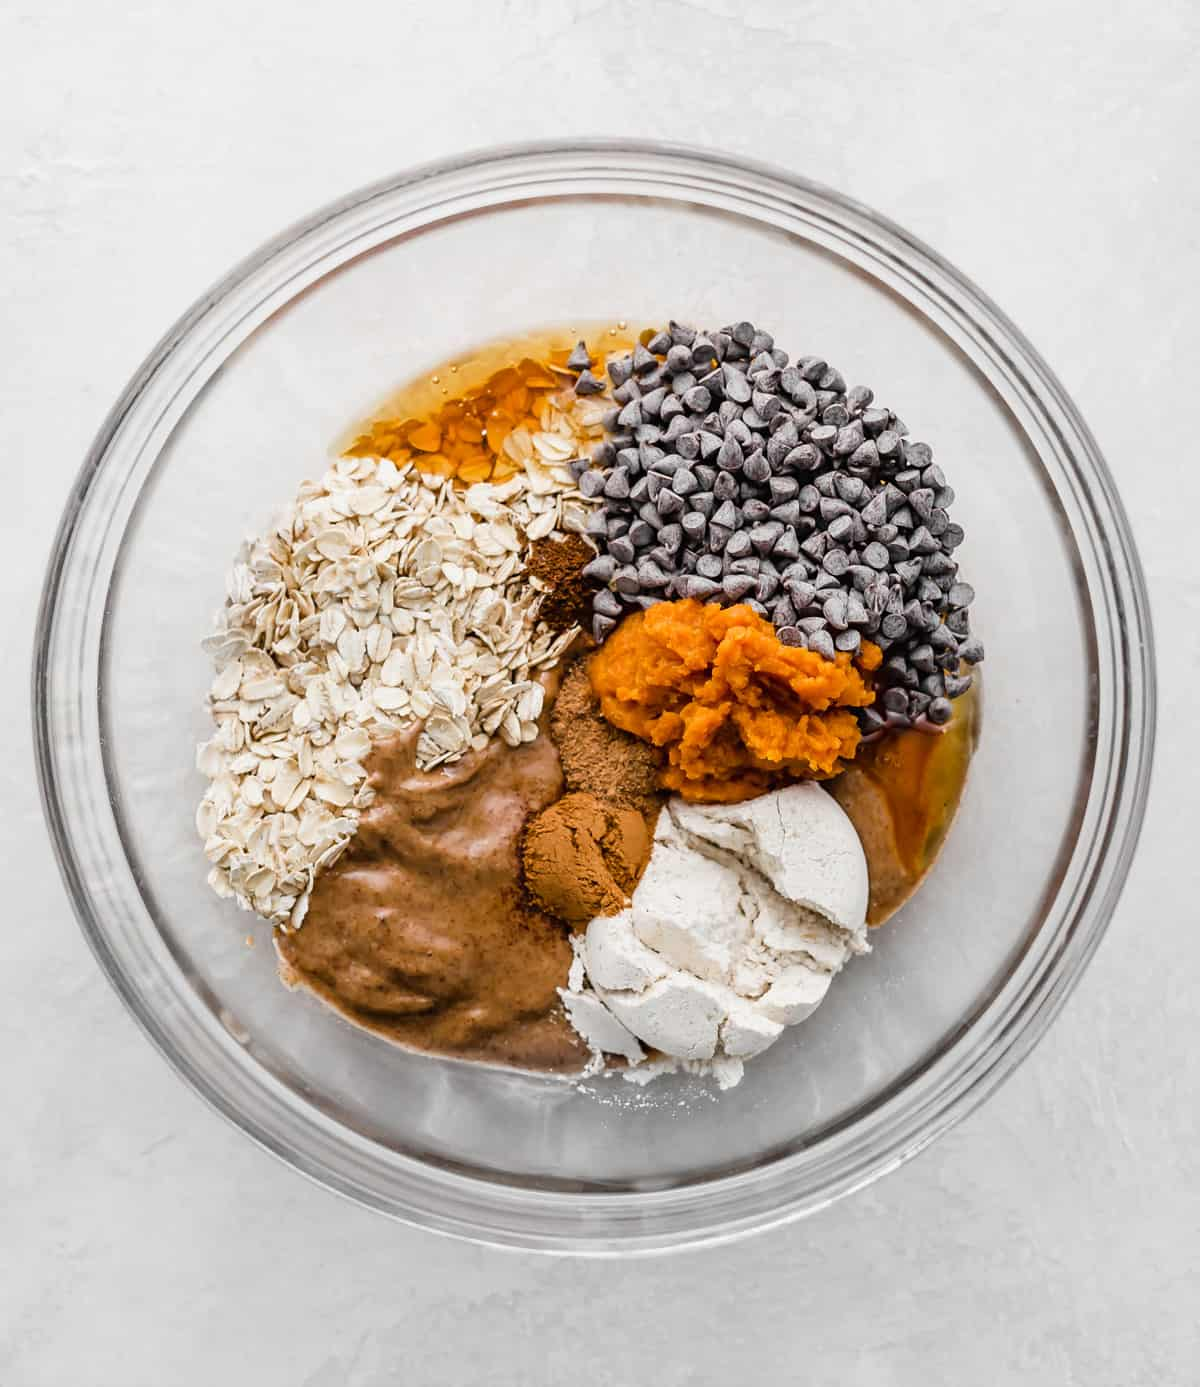 ingredients used to make pumpkin energy balls in a glass bowl.